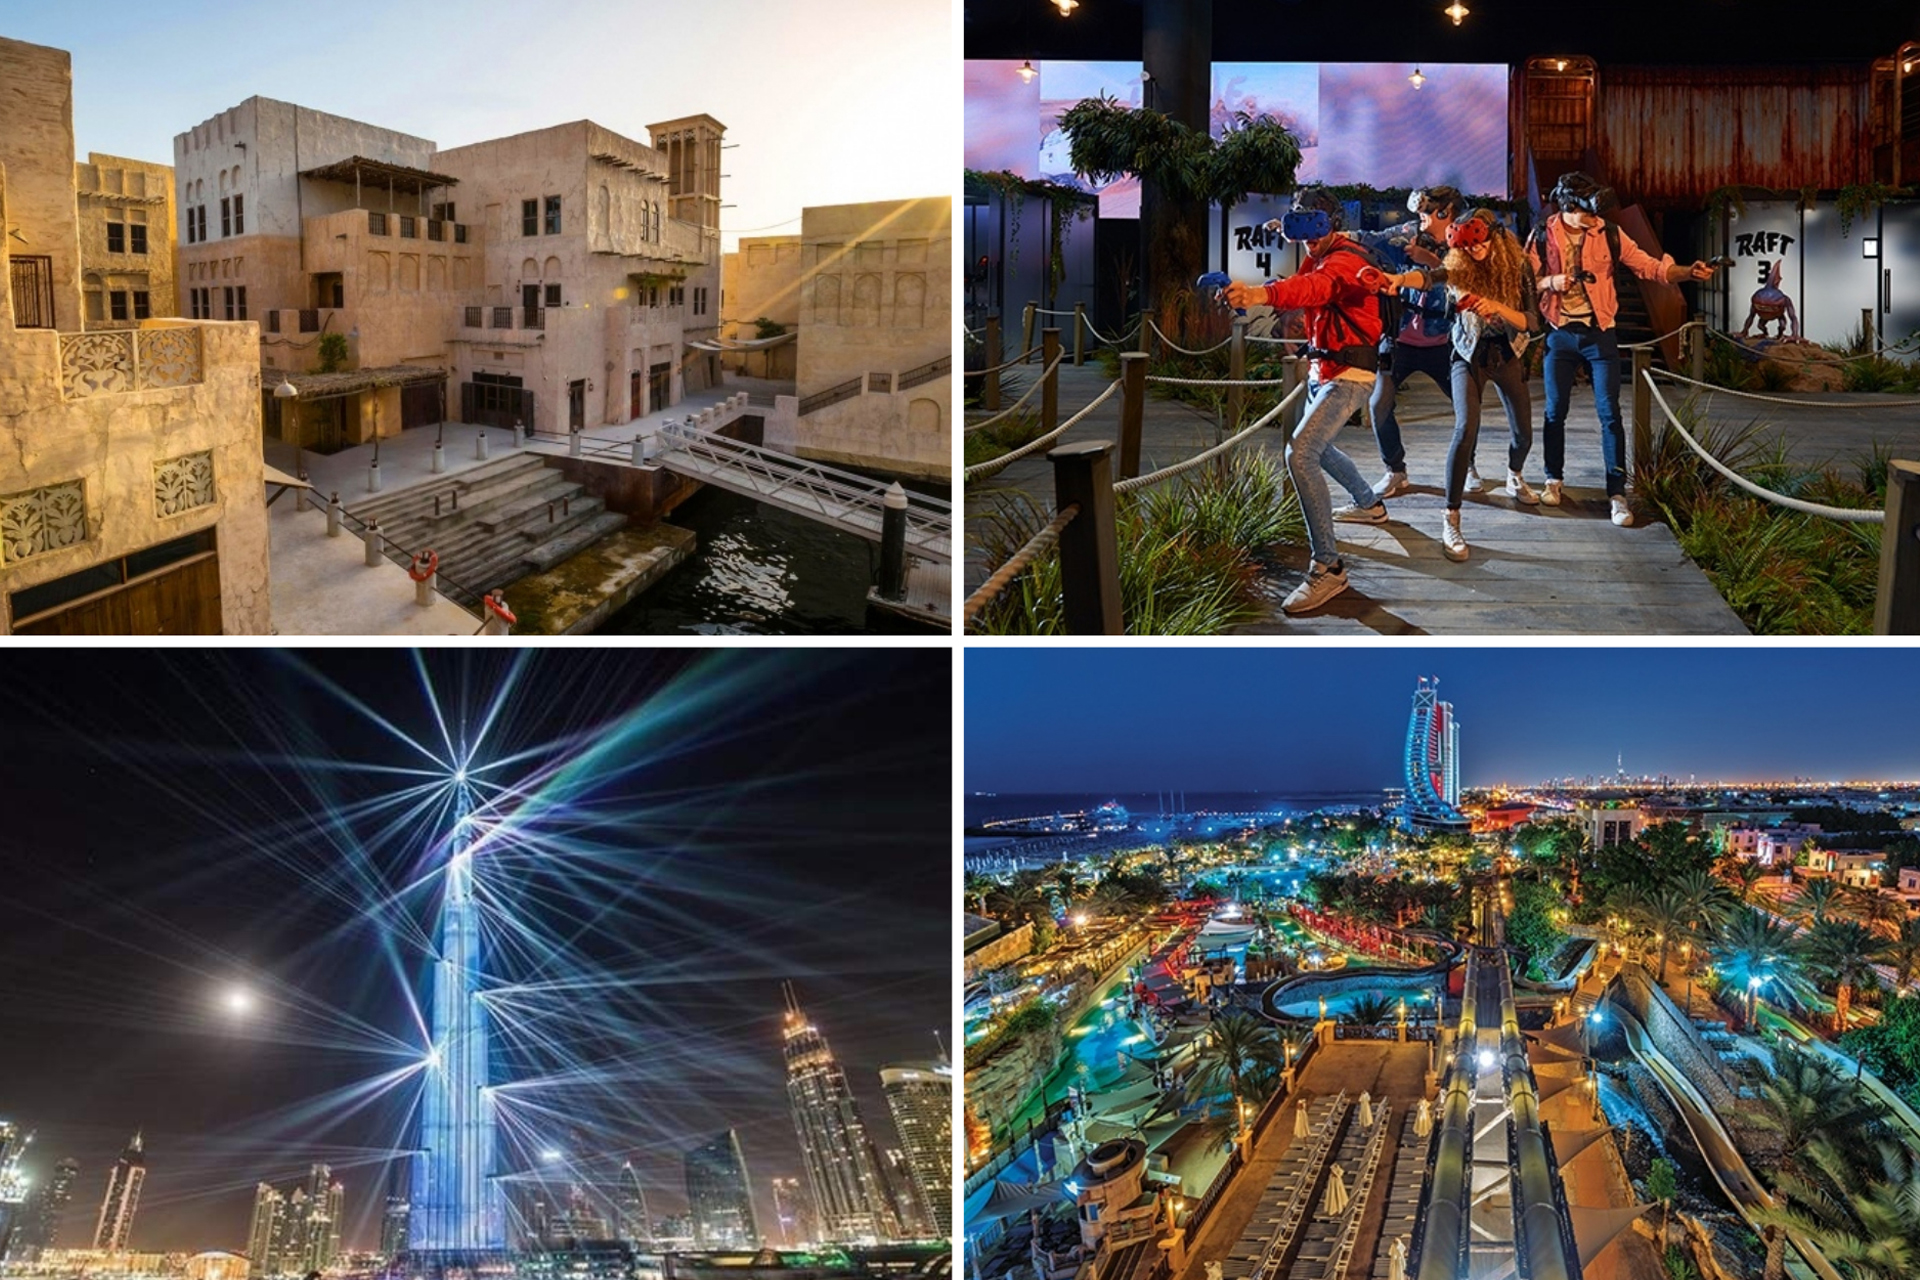 21 things to do in Dubai   Places to visit in Dubai   Time Out Dubai